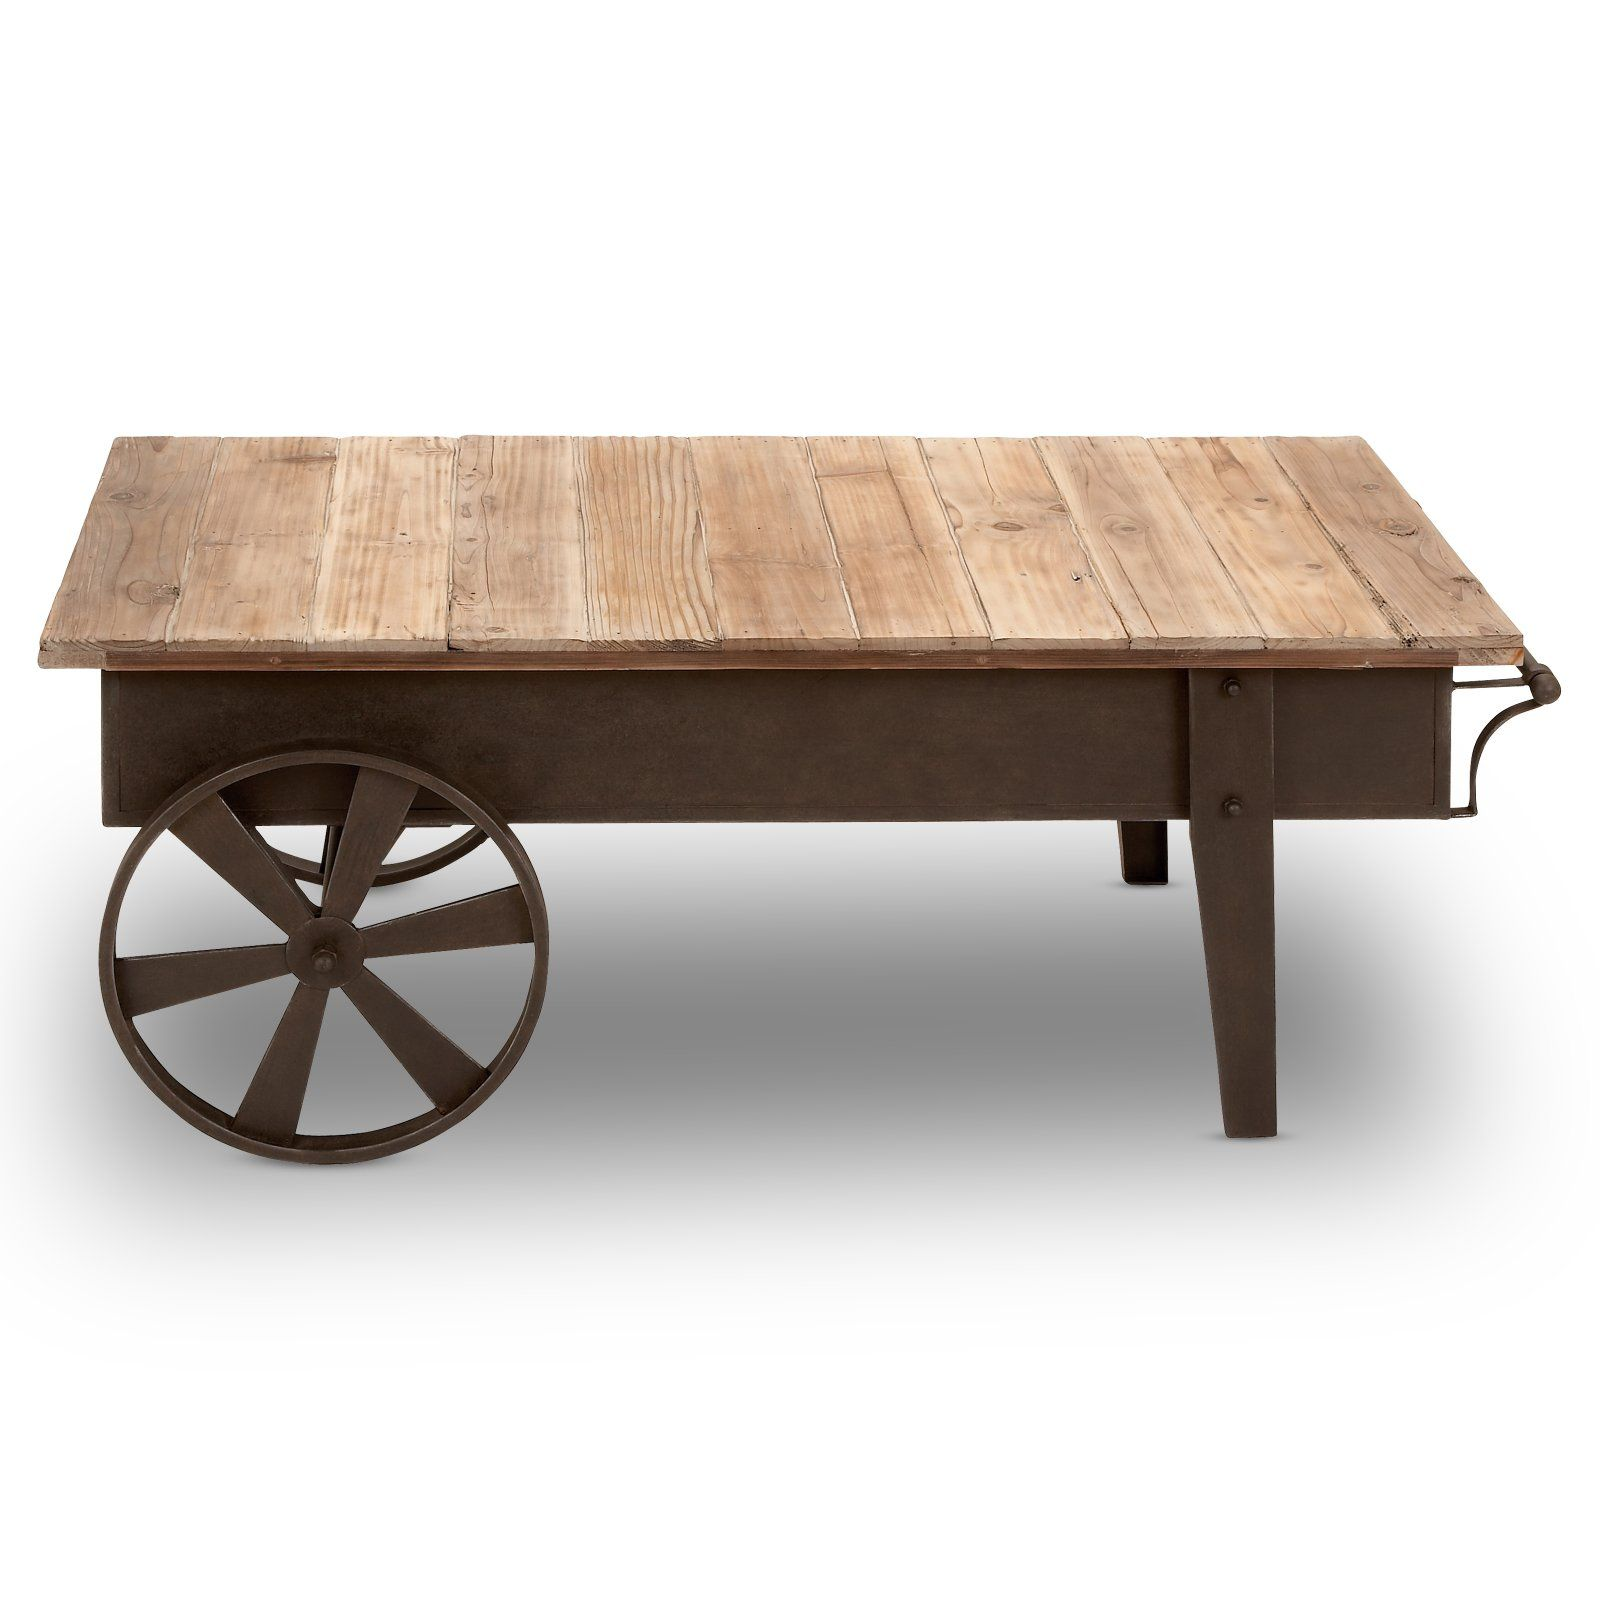 45 In Metal And Wood Cart Style Coffee Table At The Foundary Rustic Coffee Tables Industrial Style Coffee Table Coffee Table With Casters [ 1600 x 1600 Pixel ]